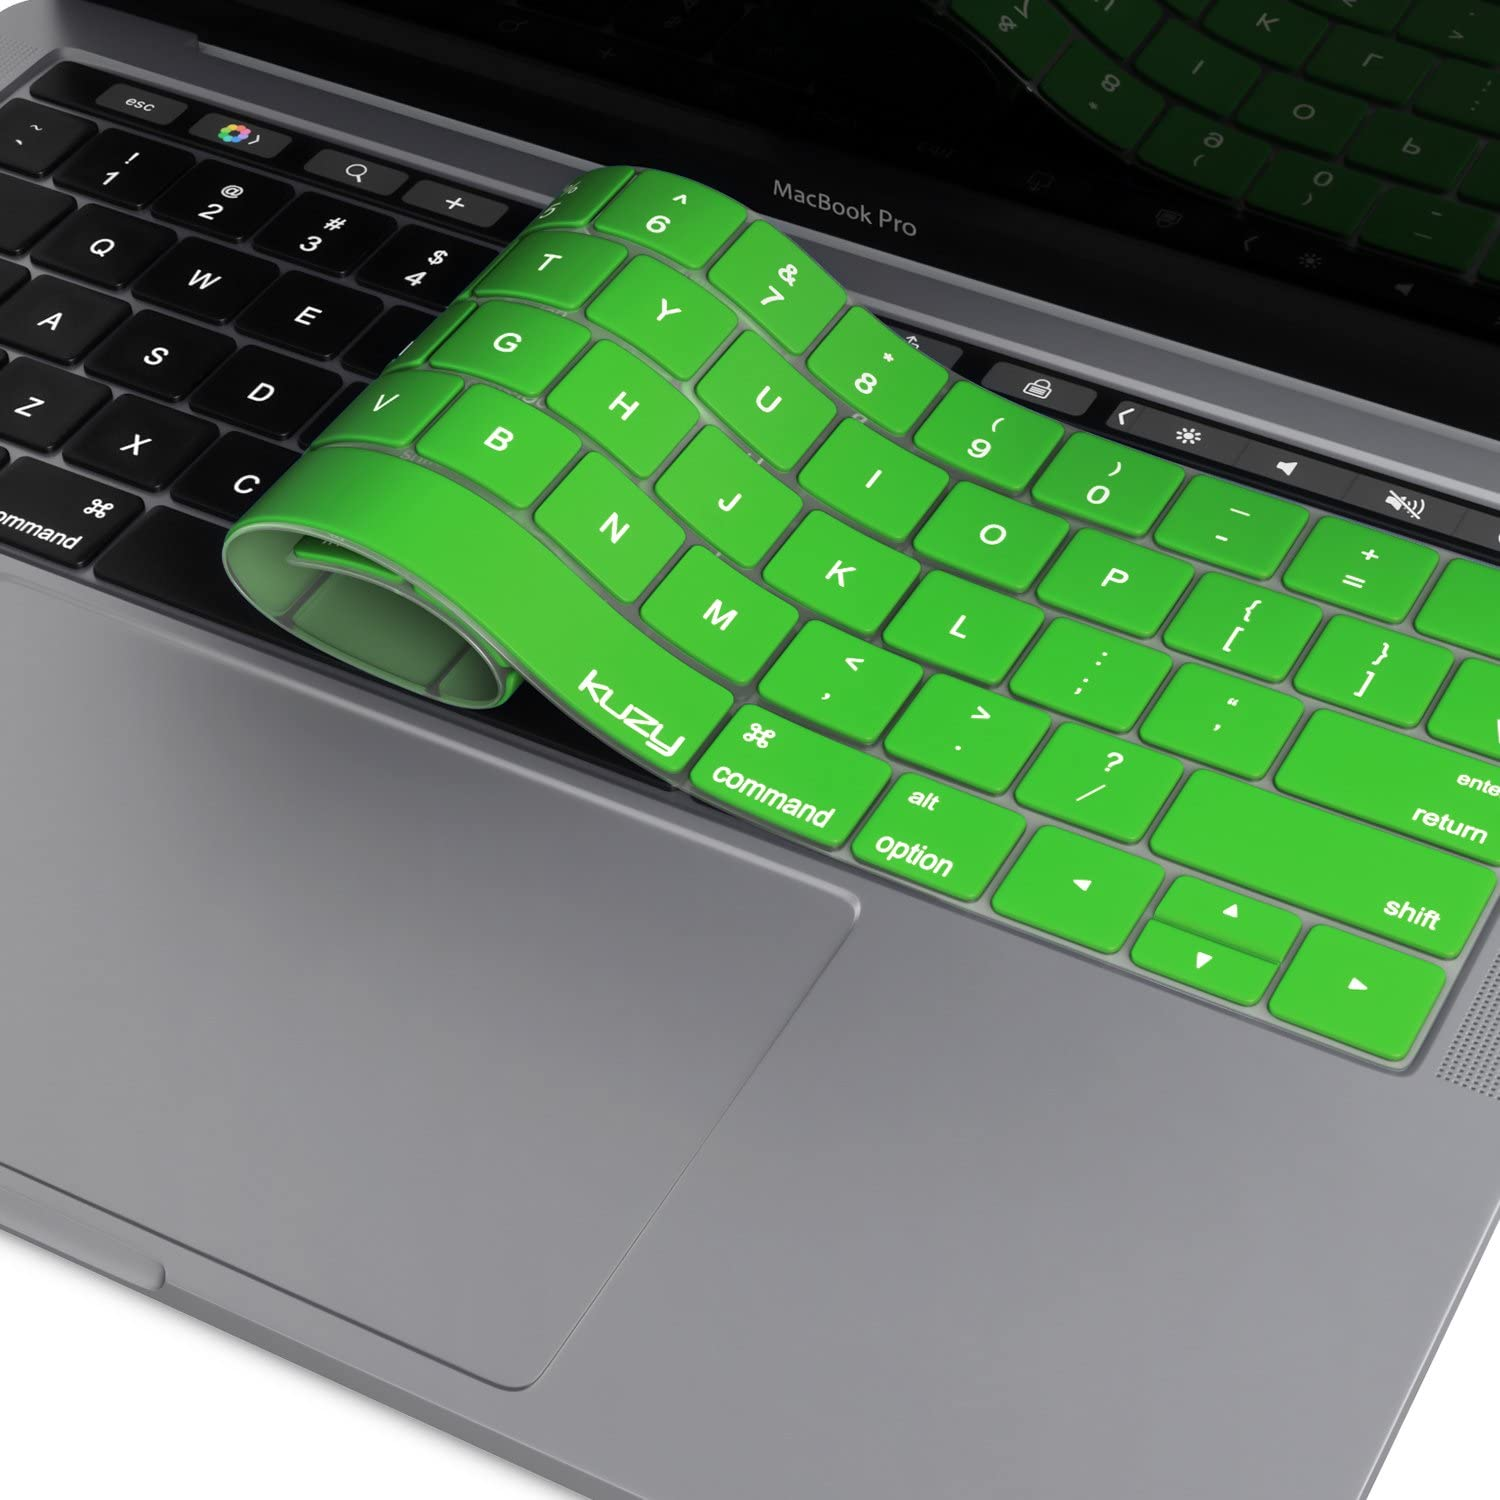 Kuzy - MacBook Pro Keyboard Cover with Touch Bar for 13 and 15 inch 2019 2018 2017 2016 (Apple Model A2159, A1989, A1990, A1706, A1707) Silicone Skin Protector - Green